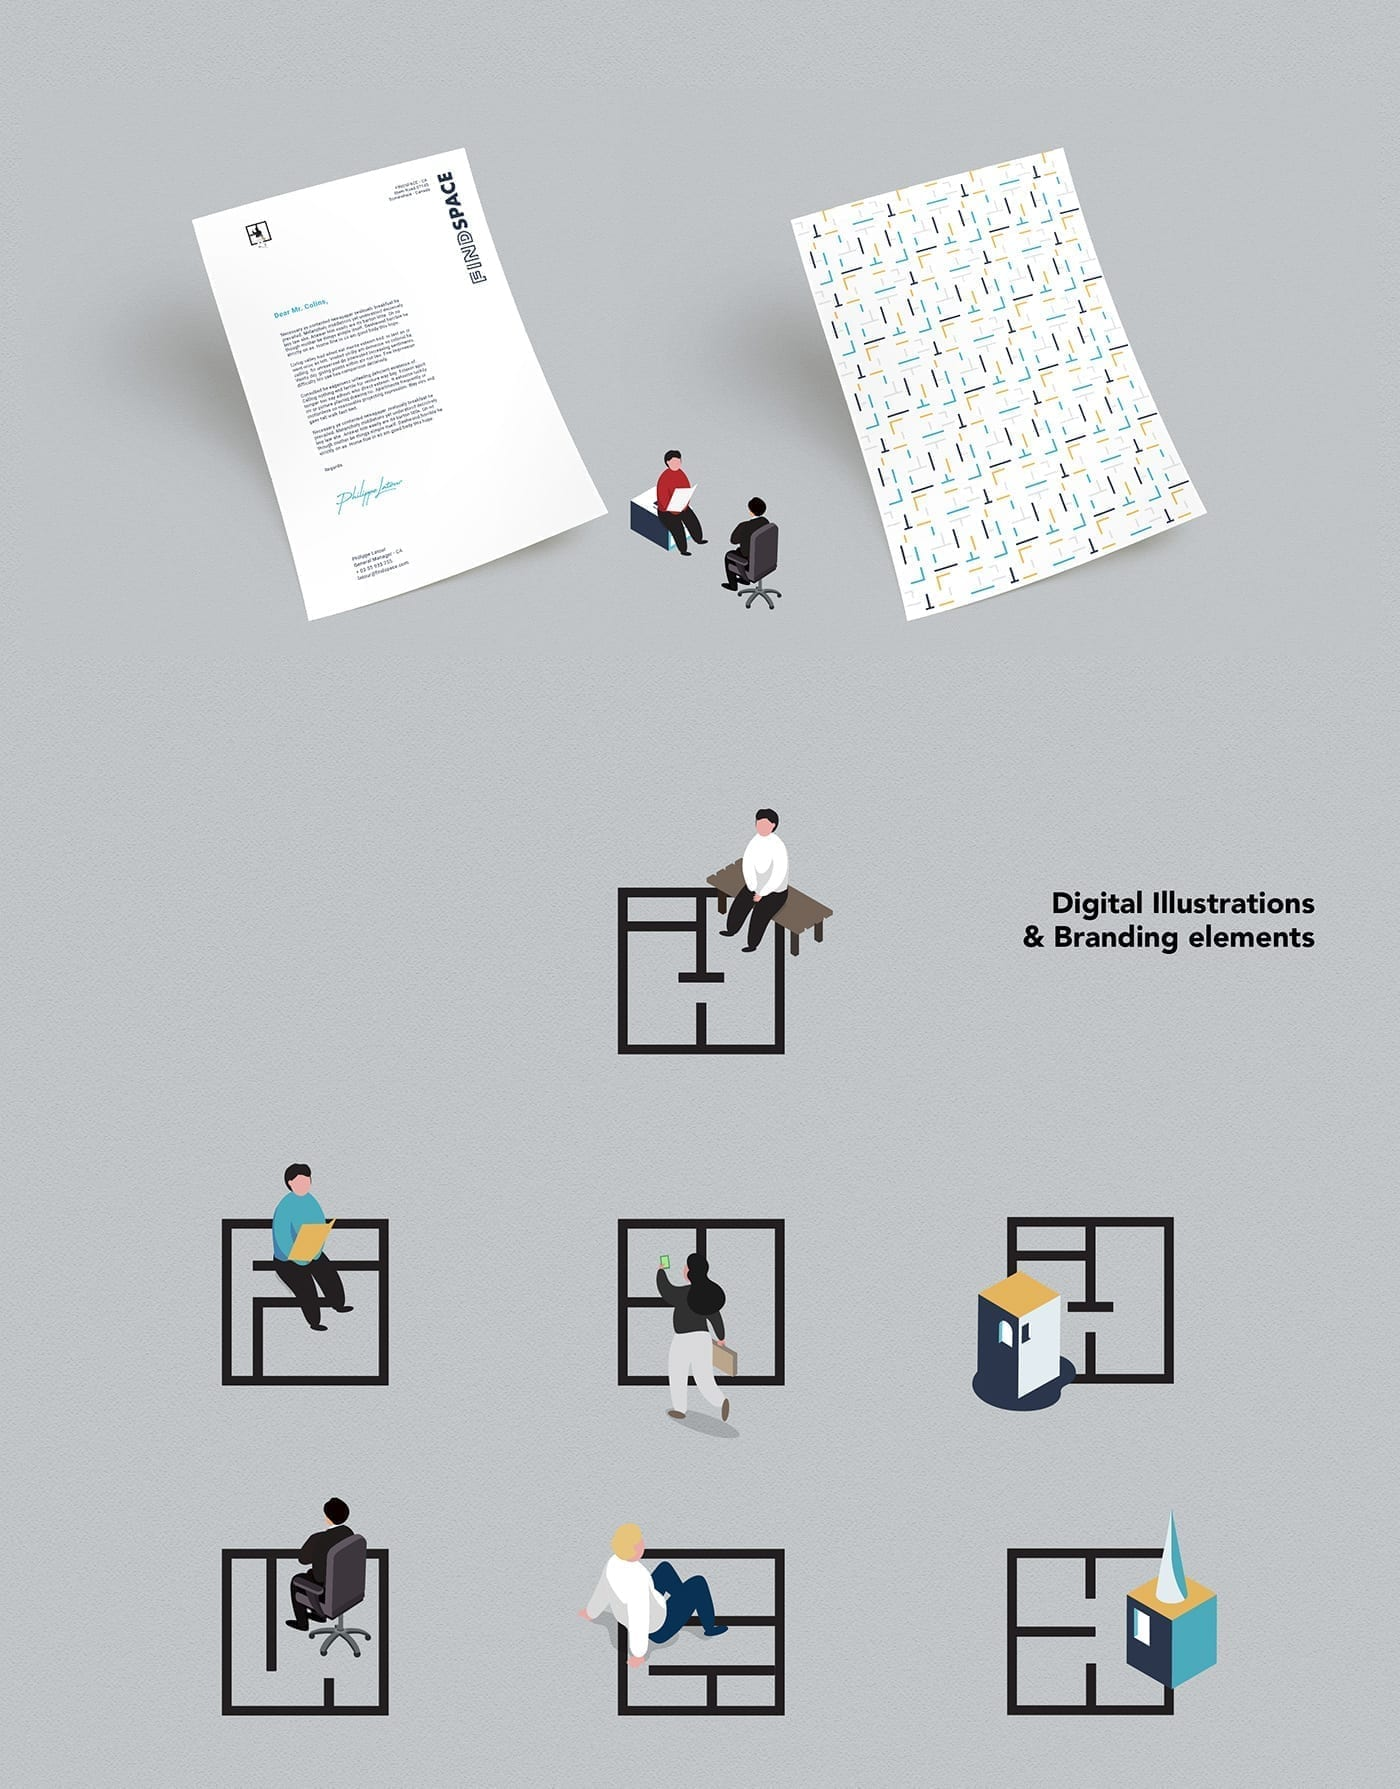 findspace_digital-illustrations_and-branding-elements